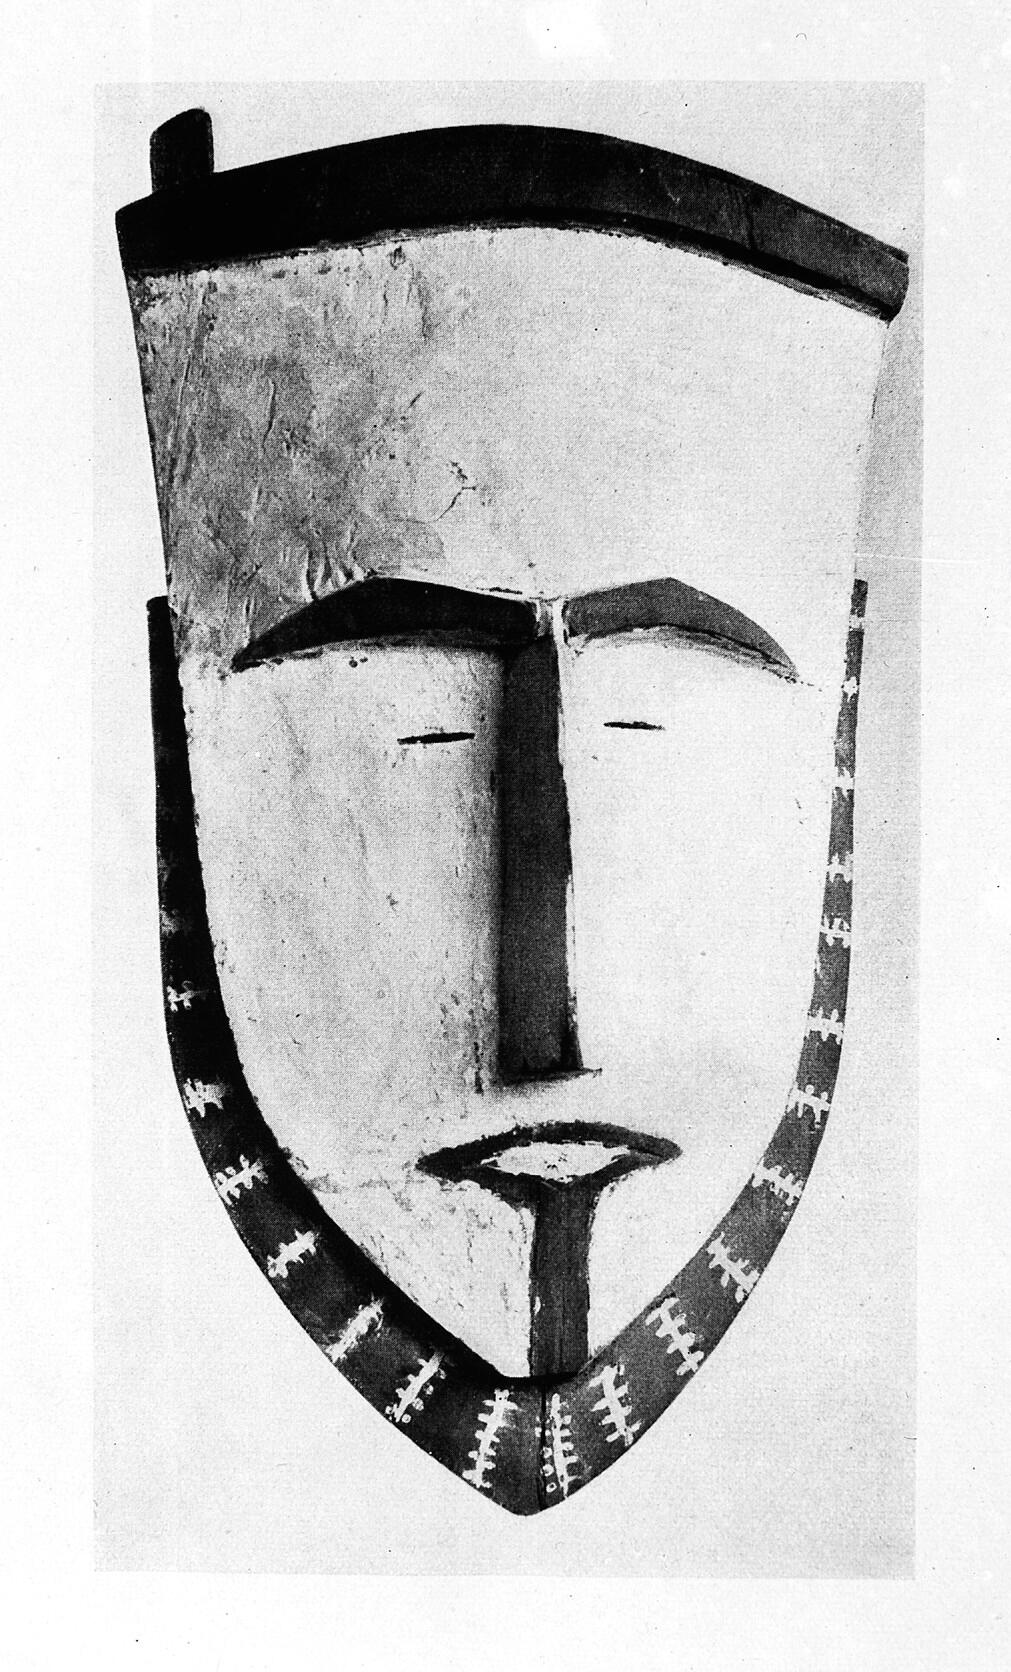 Mask, carved wood, shield shape, painted border  African